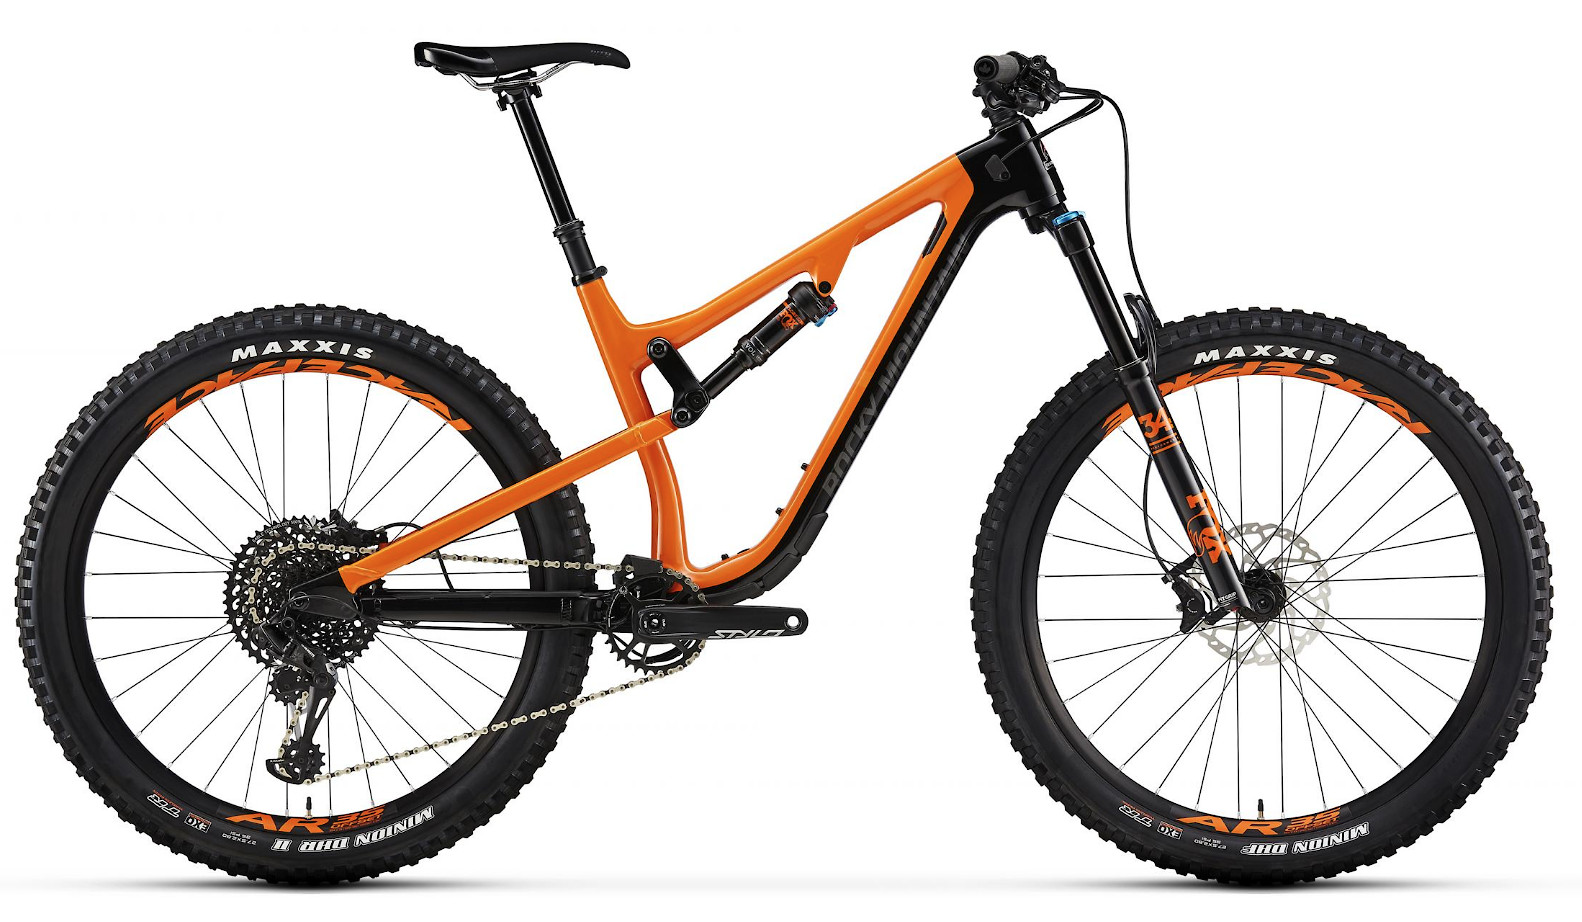 2019 Rocky Mountain Pipeline Carbon 50 - Black and orange